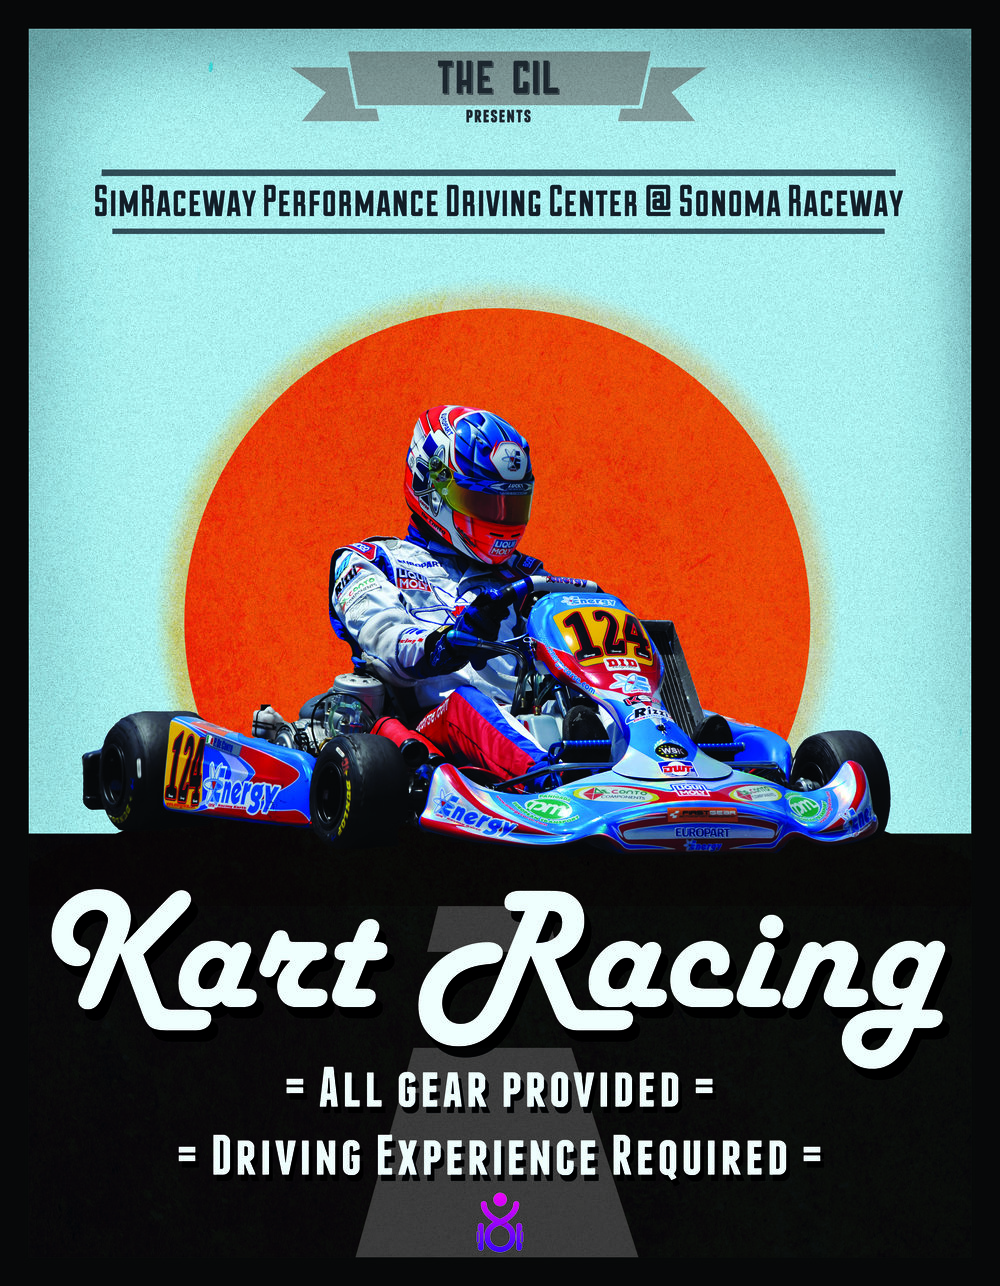 Kart Racing  - This is a new project that The CIL is very excited about.  Do you want to race go-karts? All karts will be fully equipped with hand controls.  Tell us that you want to race and we will contact you with our first date available.  Click here to add your name to the list.Date: TBDLocation: SimRaceway Performance Driving Center in Sonoma, CA